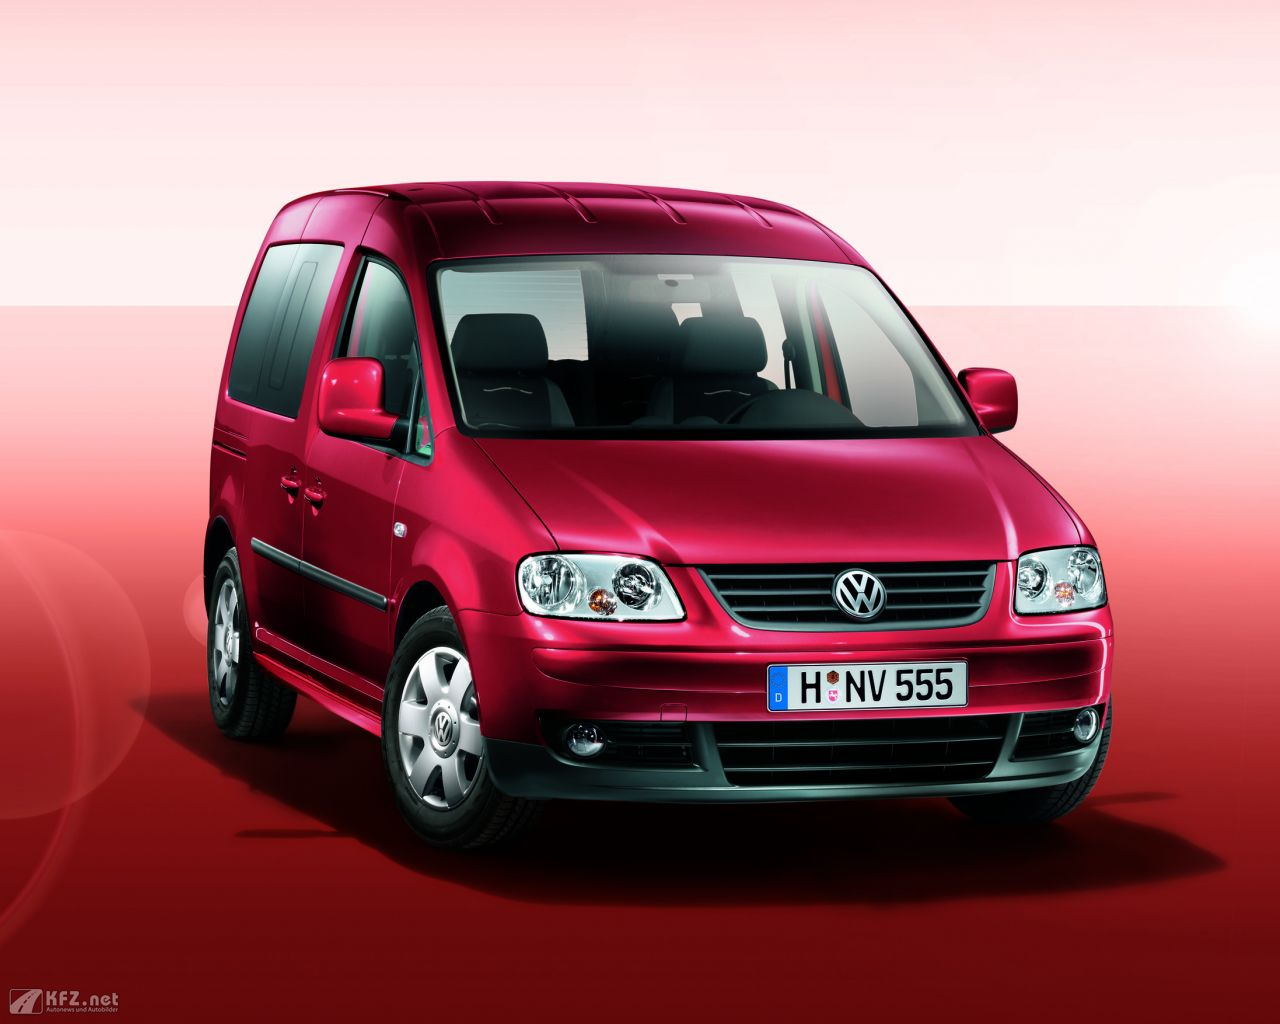 vw-caddy-1280x1024-1